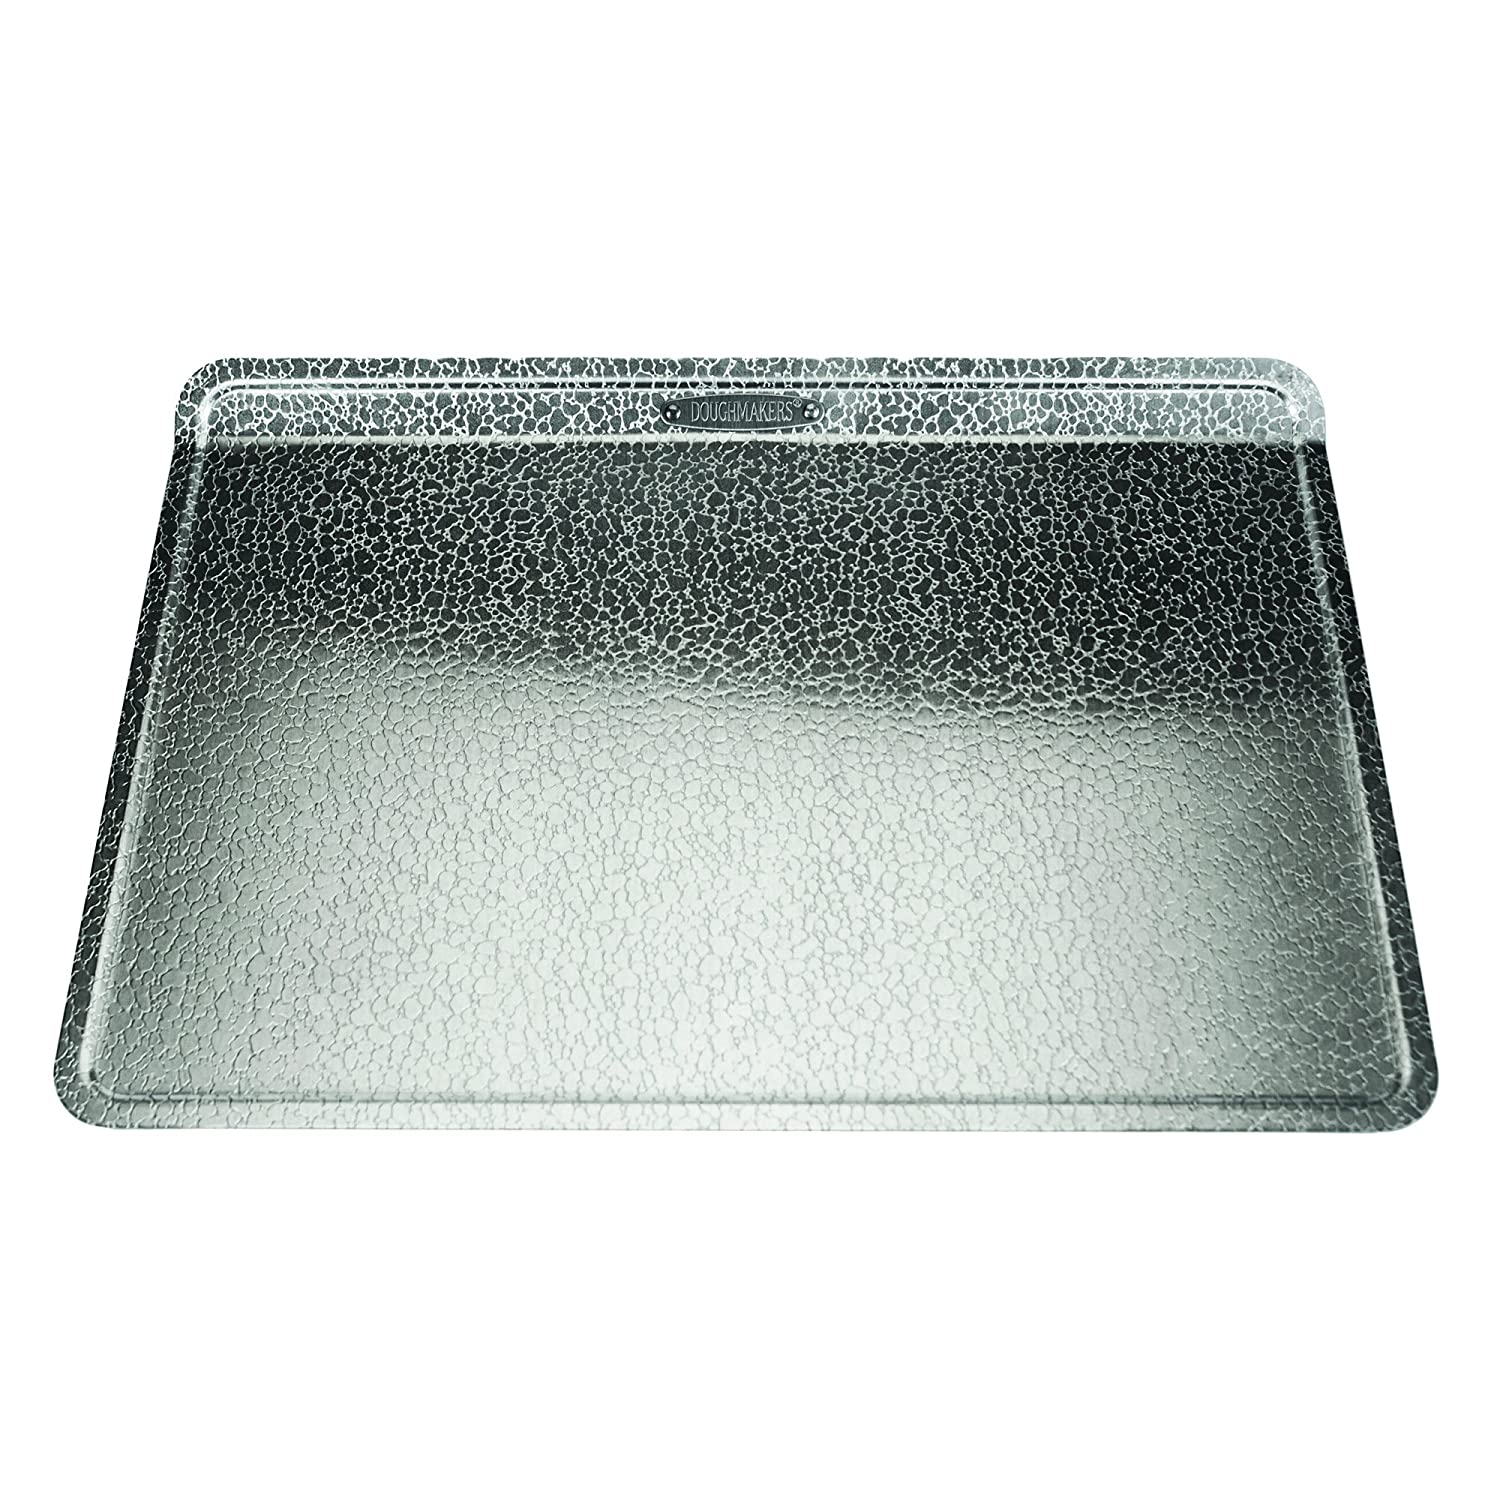 Doughmakers 10031 Biscuit Sheet Commercial Grade Aluminum Bake Pan 10 x 14 Fox Run Craftsmen